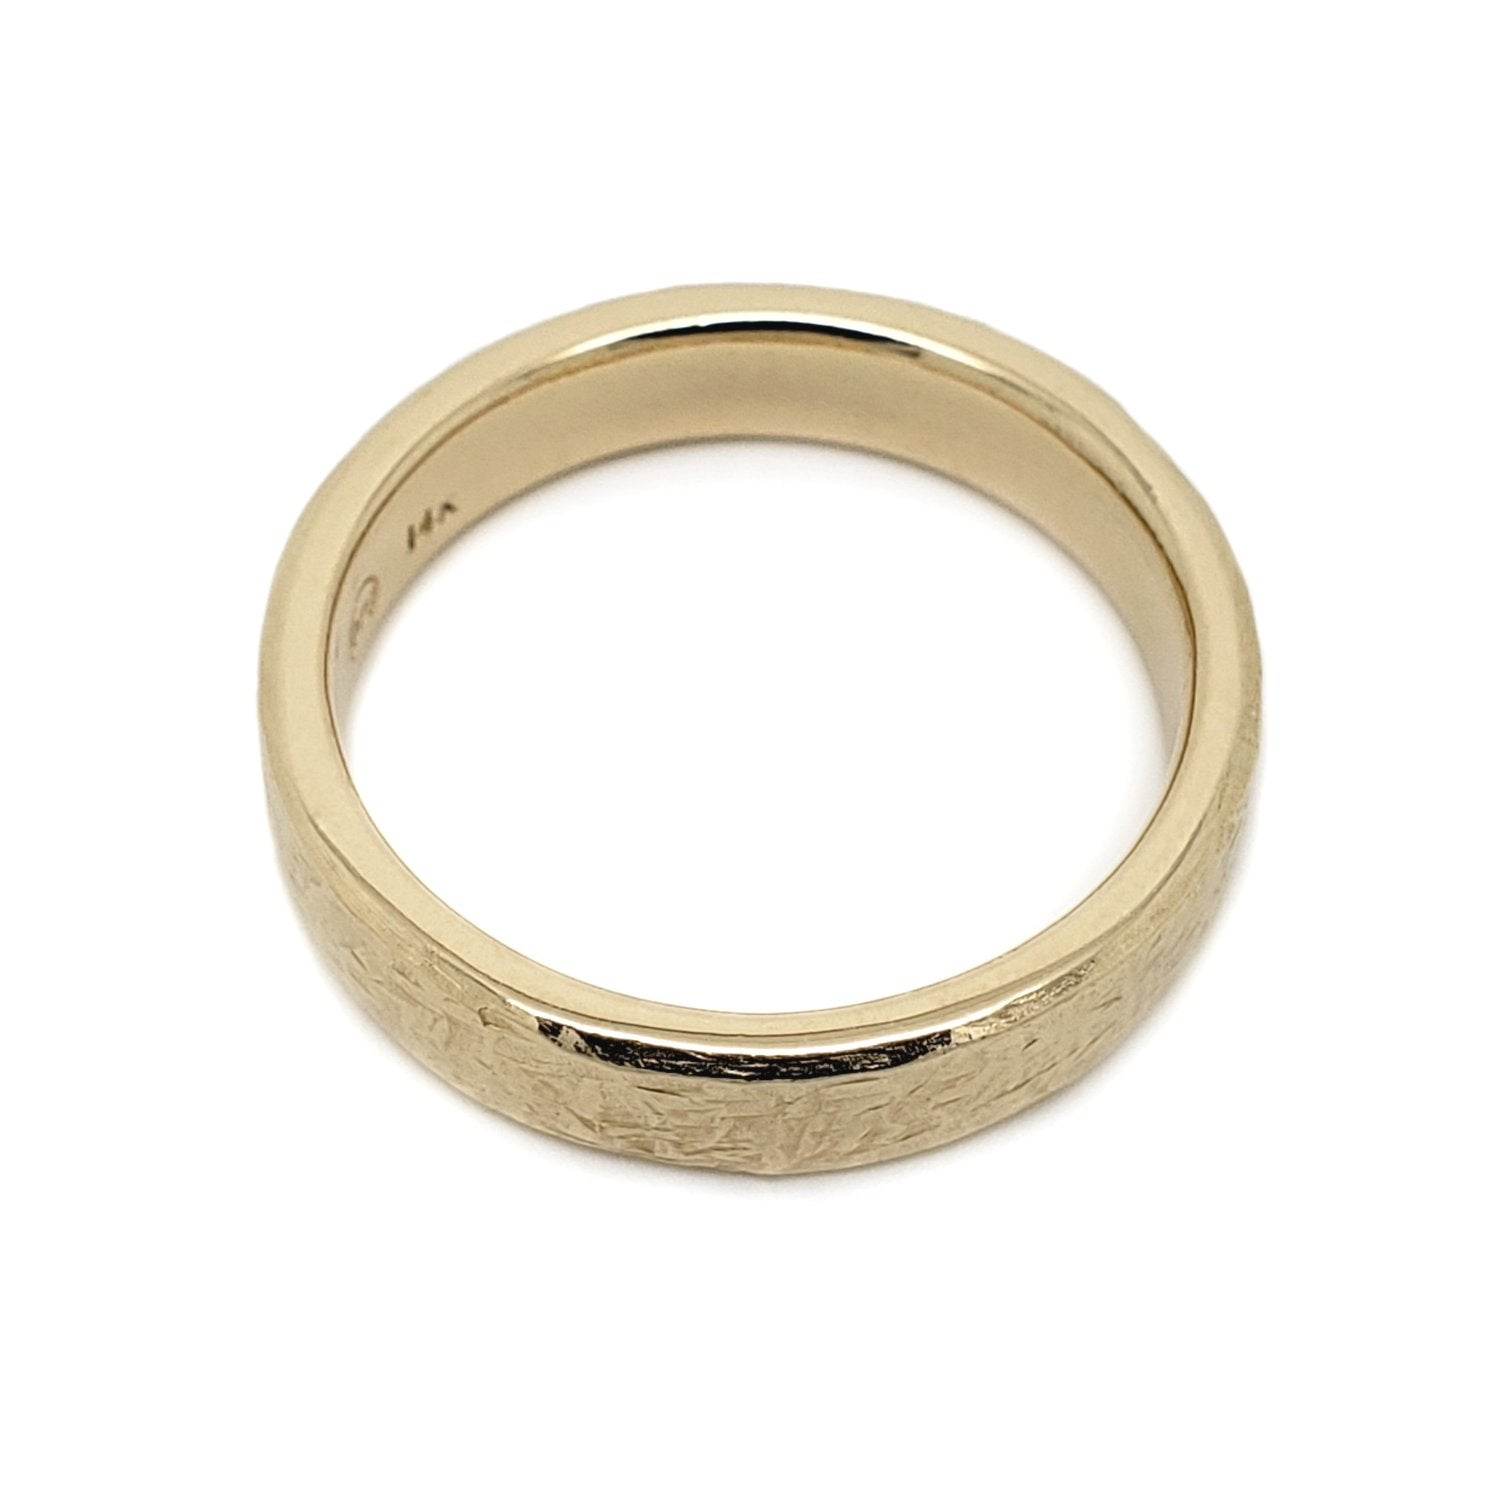 14kt yellow gold elephant skin textured wedding band Era Design